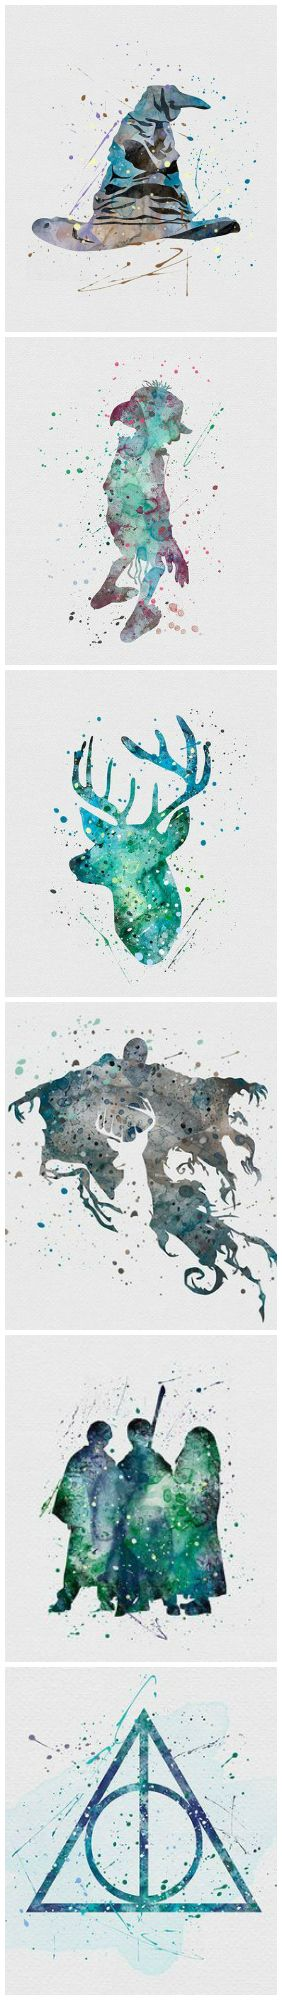 Harry Potter Watercolors